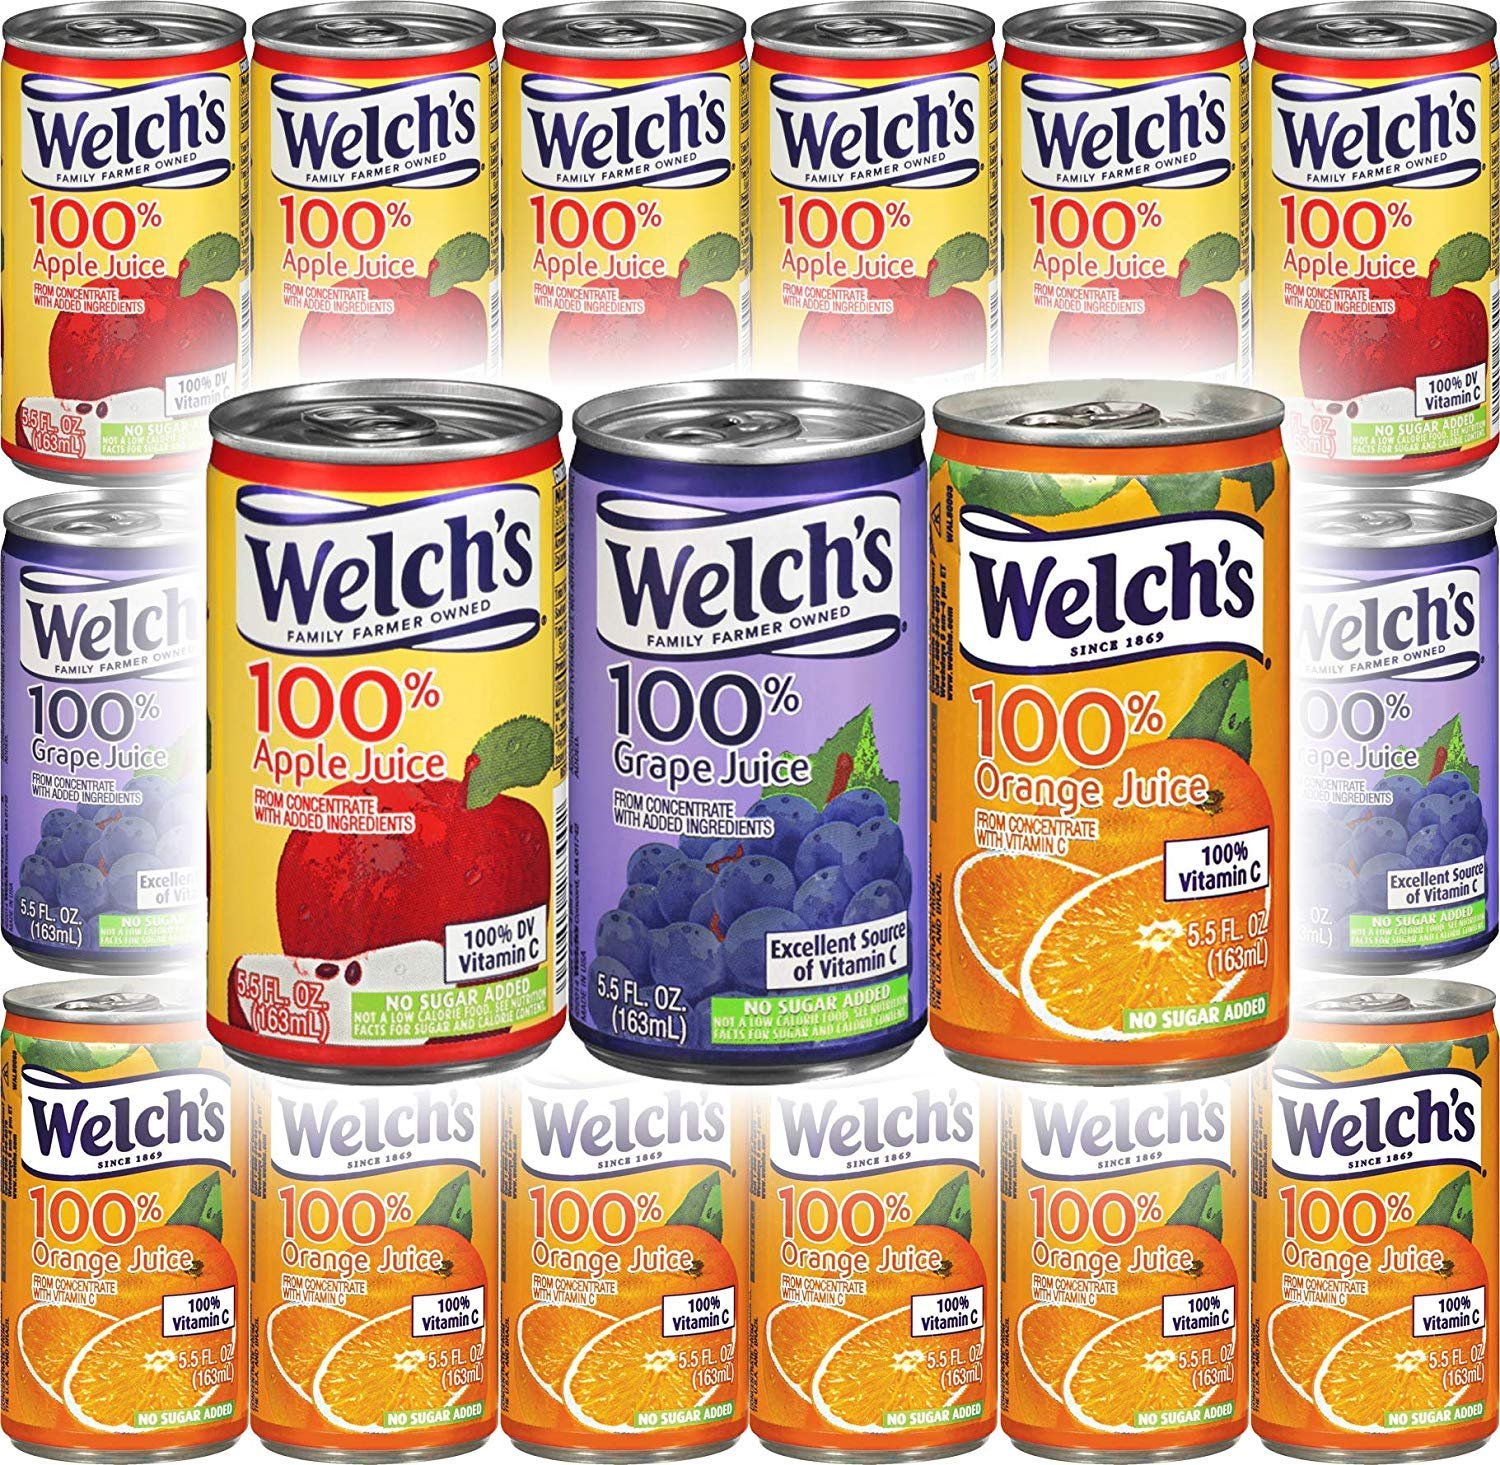 Welch's Apple, Orange, Grape Juice 100% Juice - Variety Pack, 5.5oz (Pack of 18, Total of 99 Oz)